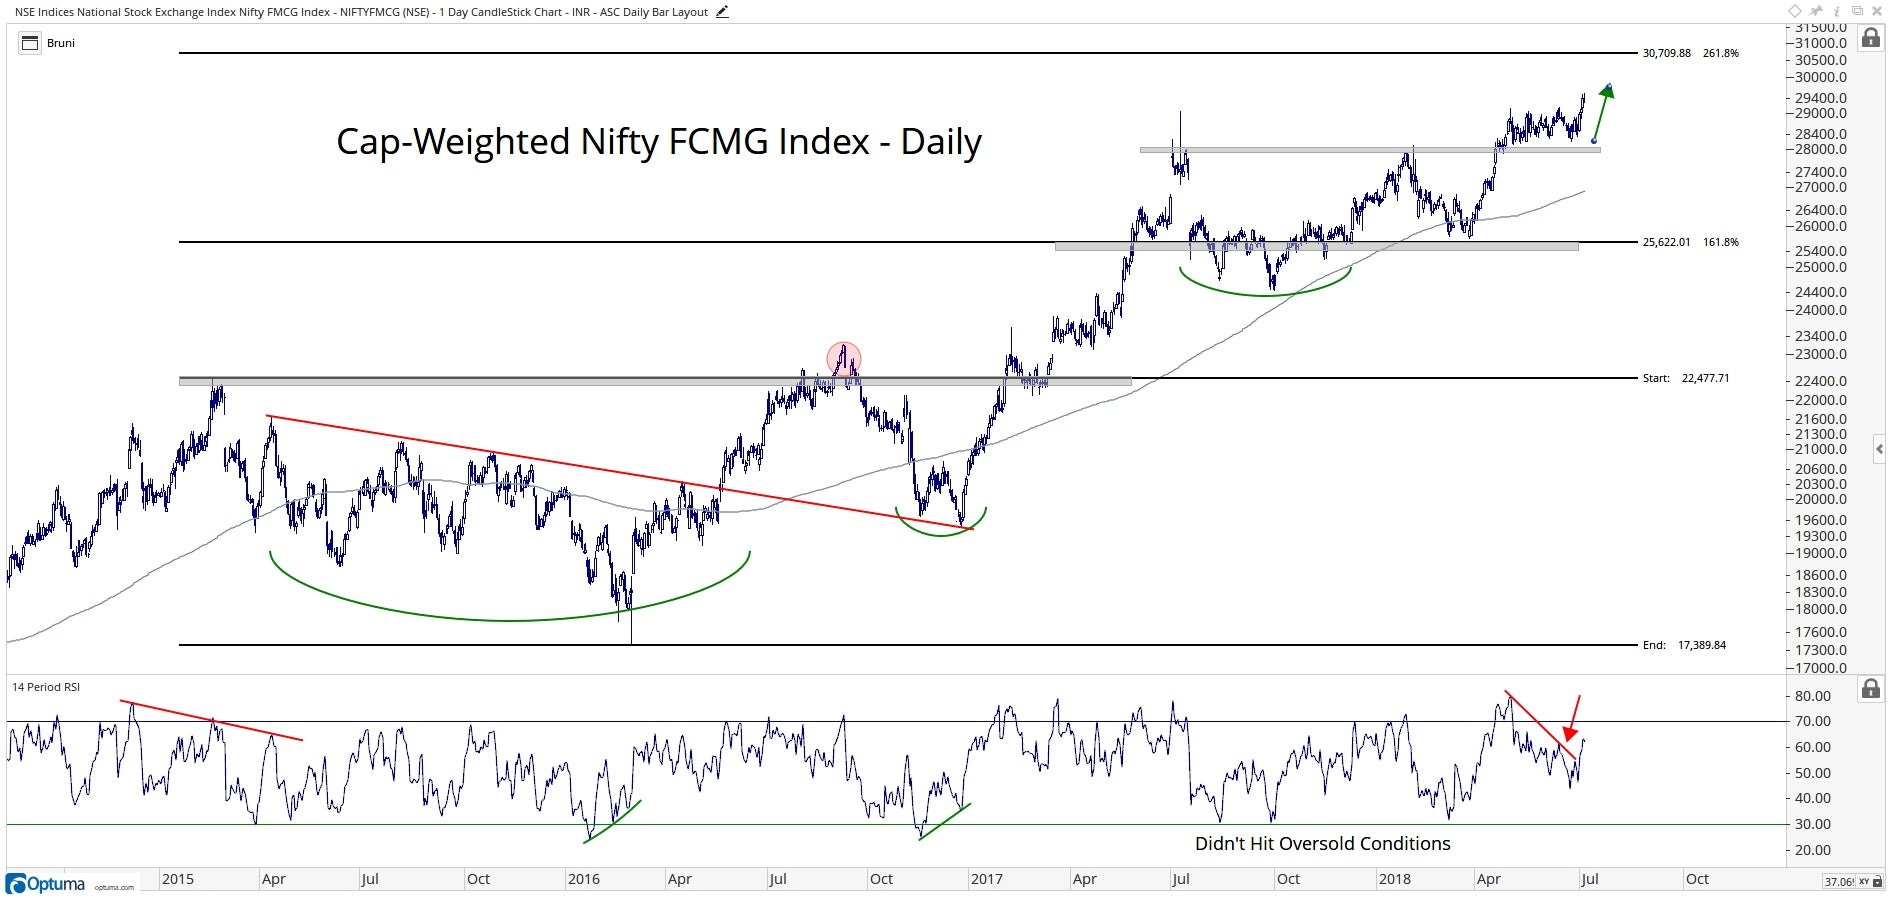 Chart showing performance of Nifty FMCG